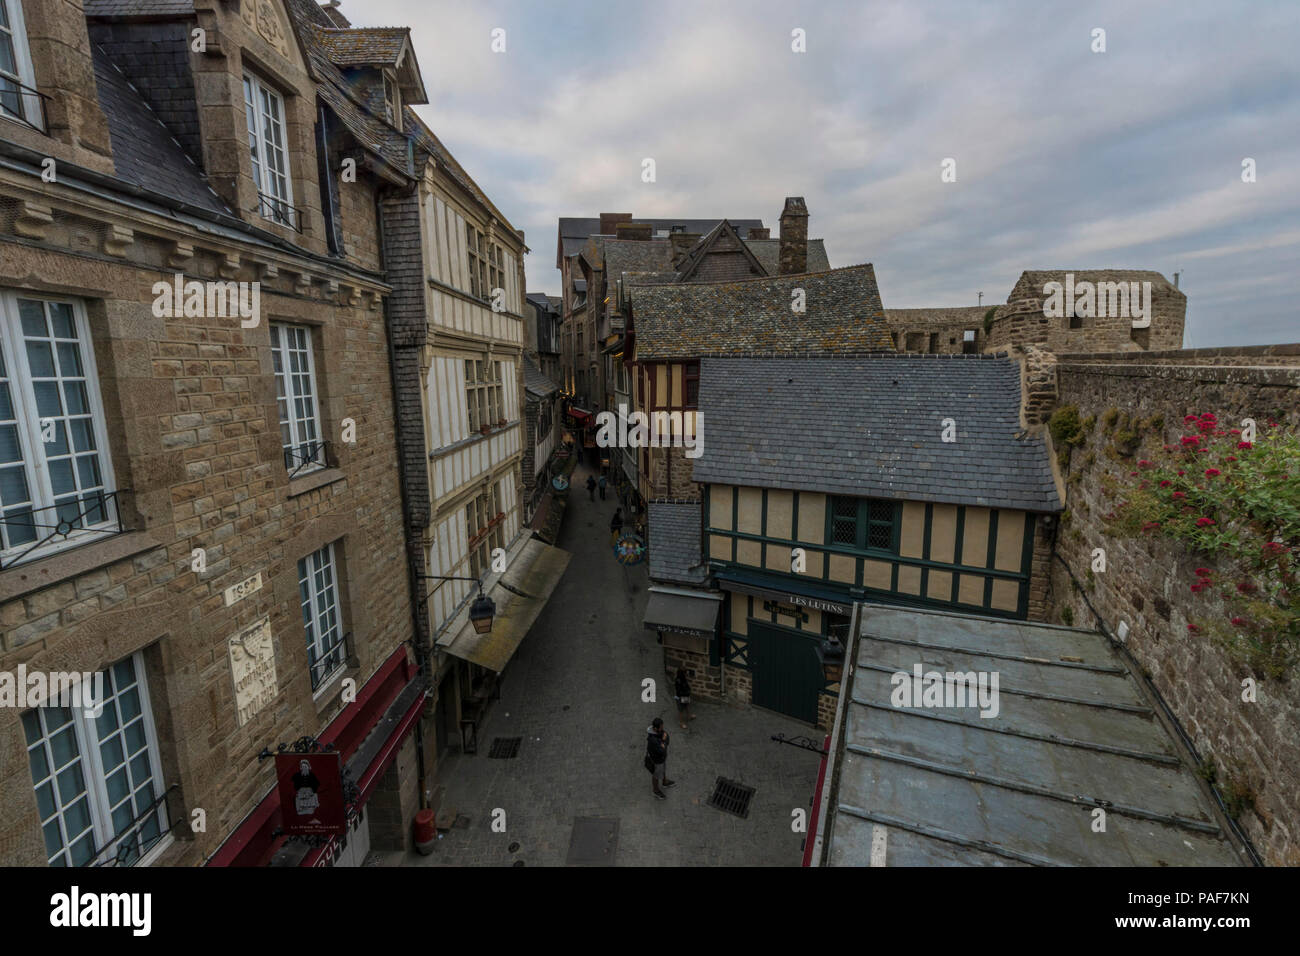 Mont St. Michel, Normandy, France. The famous town on the island, connected to the mainland only by a single bridge. Stock Photo